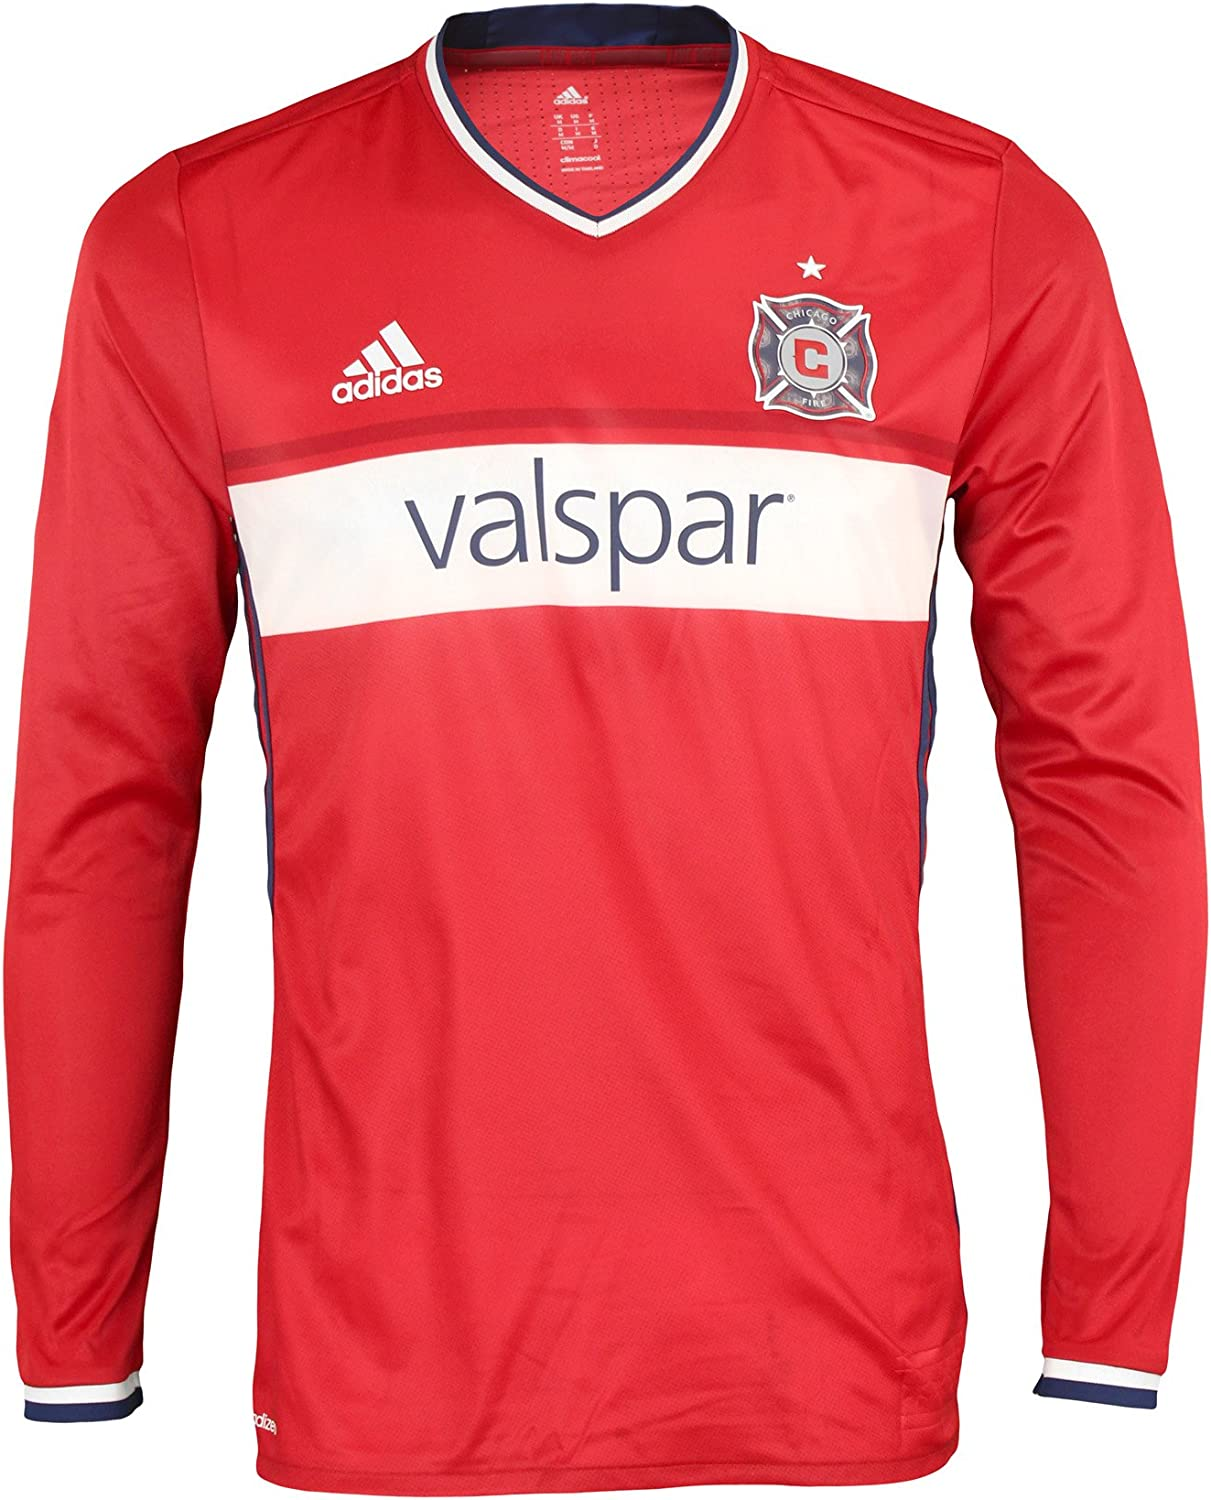 Amazon Com Adidas Mls Soccer Chicago Fire Men S Long Sleeve Authentic Jersey Red Clothing